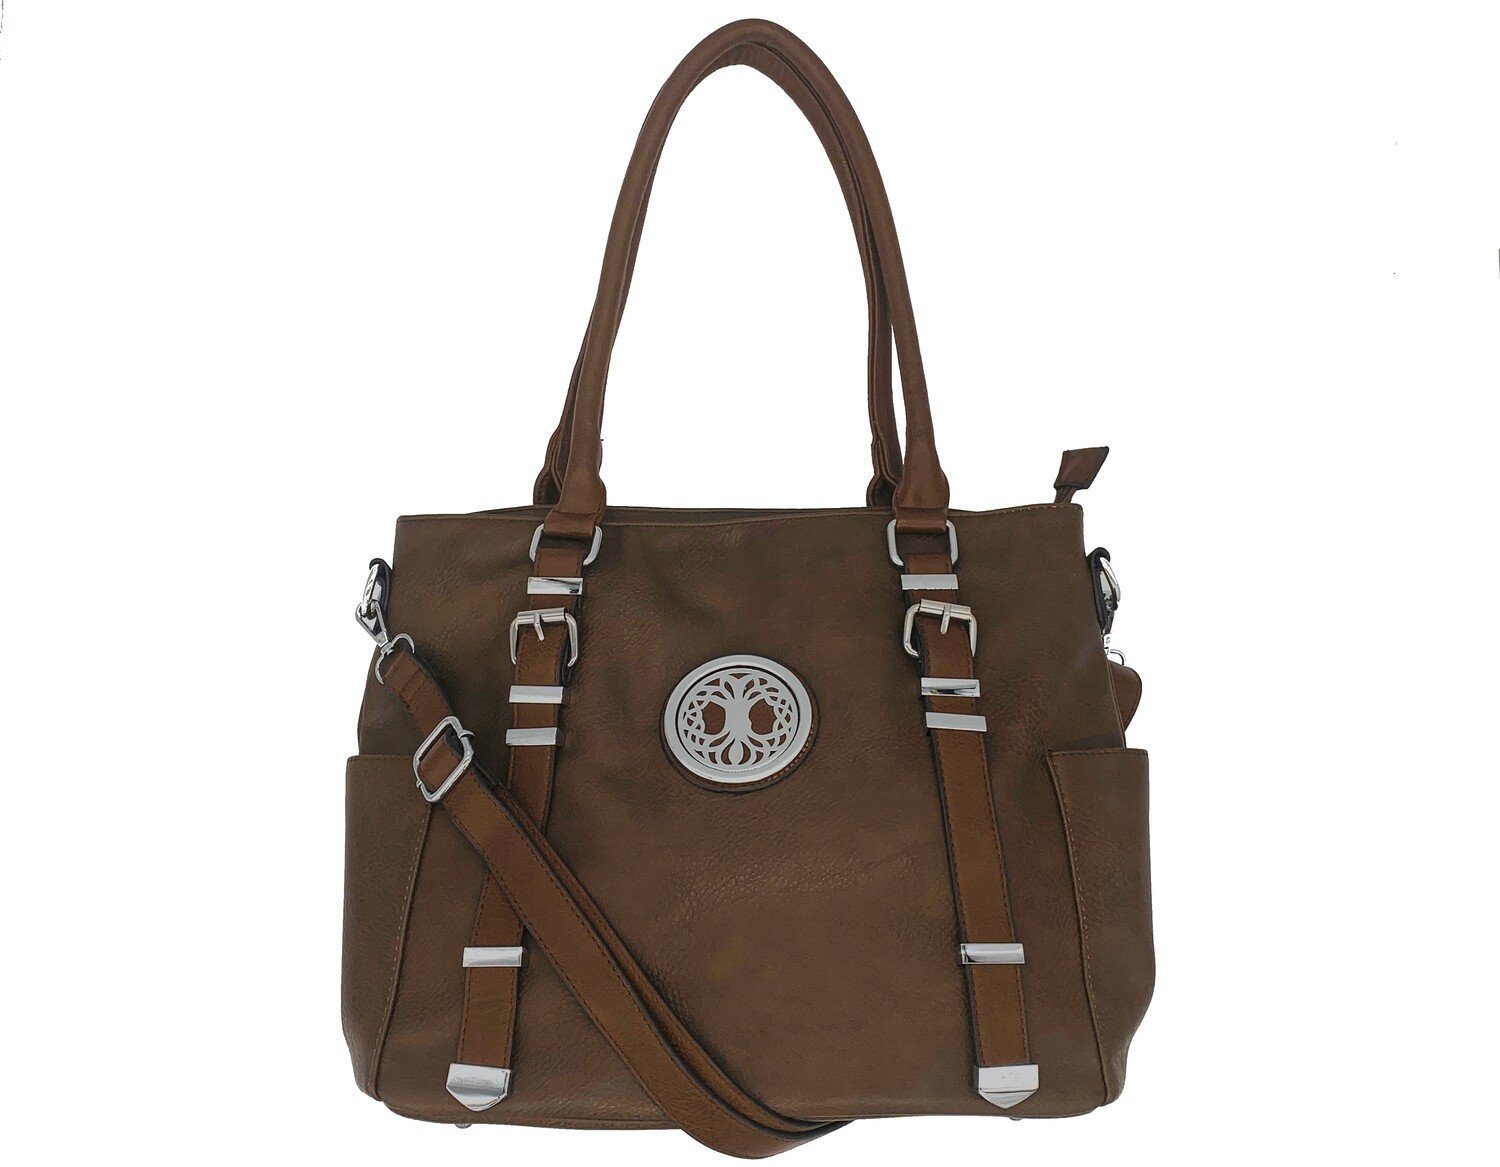 151 Buckle Bag coffee